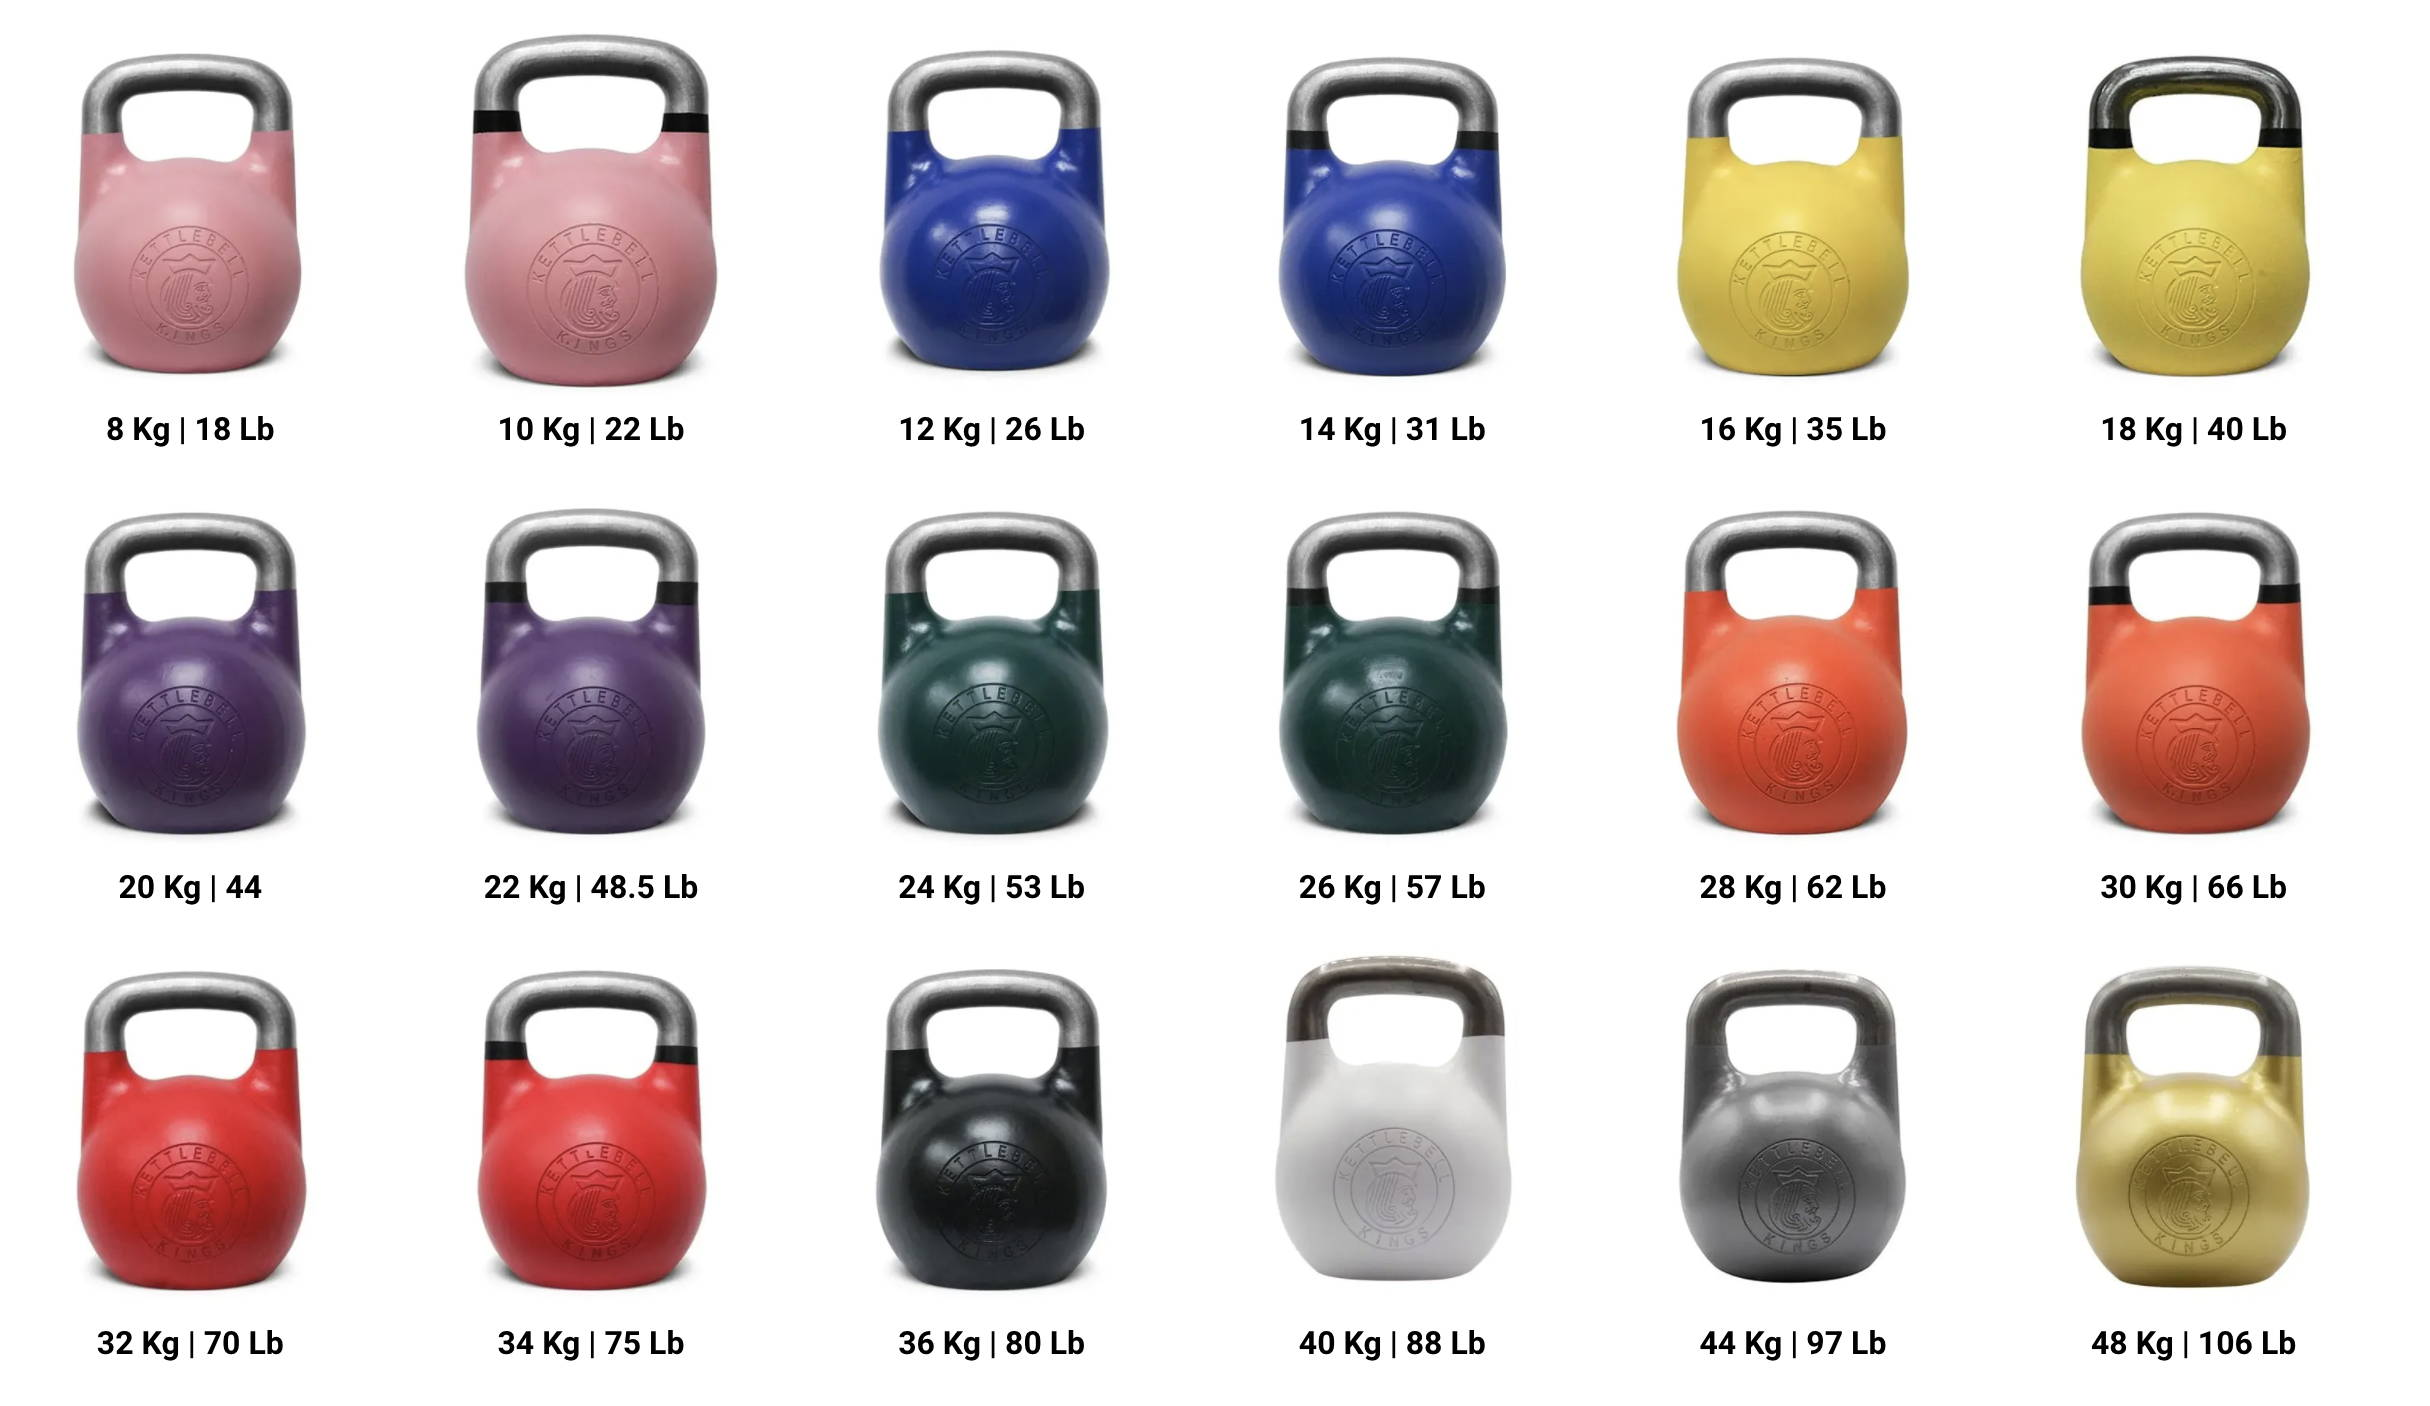 Competition Kettlebell - Kettlebell Color Coding